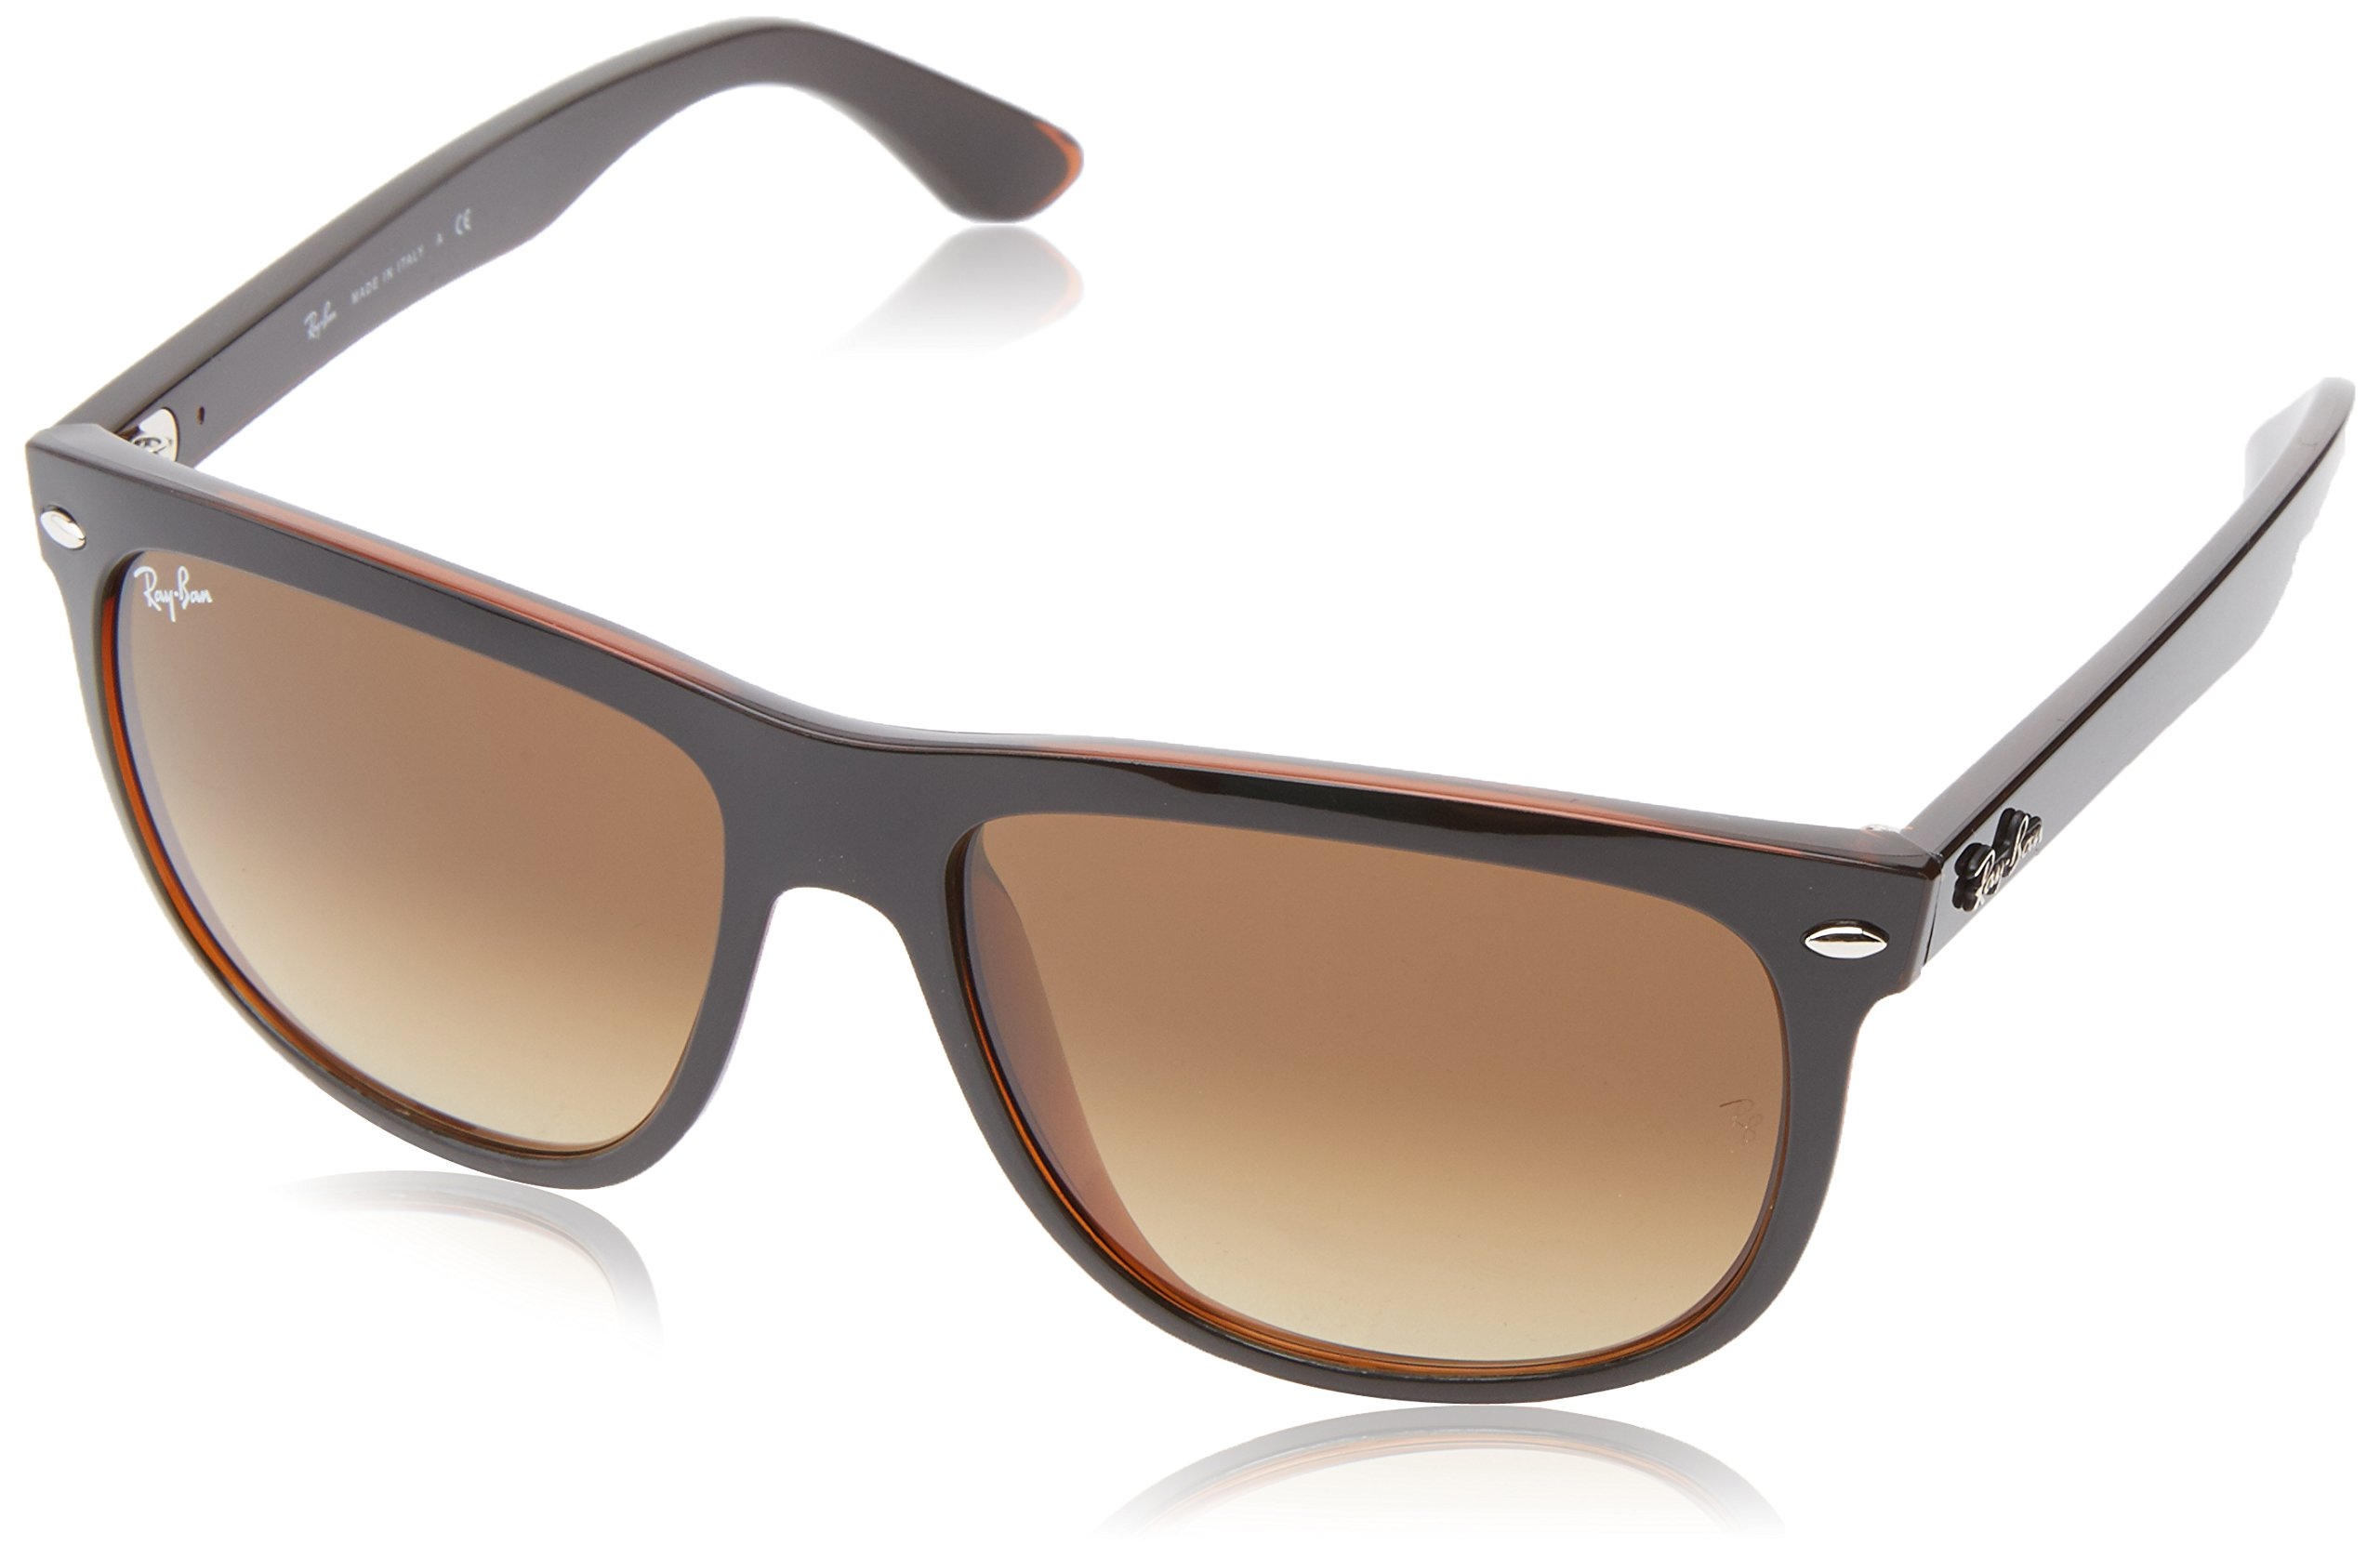 Ray-Ban RB4147 - TOP BLACK ON BROWN Frame BROWN GRADIENT DARK BROWN Lenses 56mm Non-Polarized